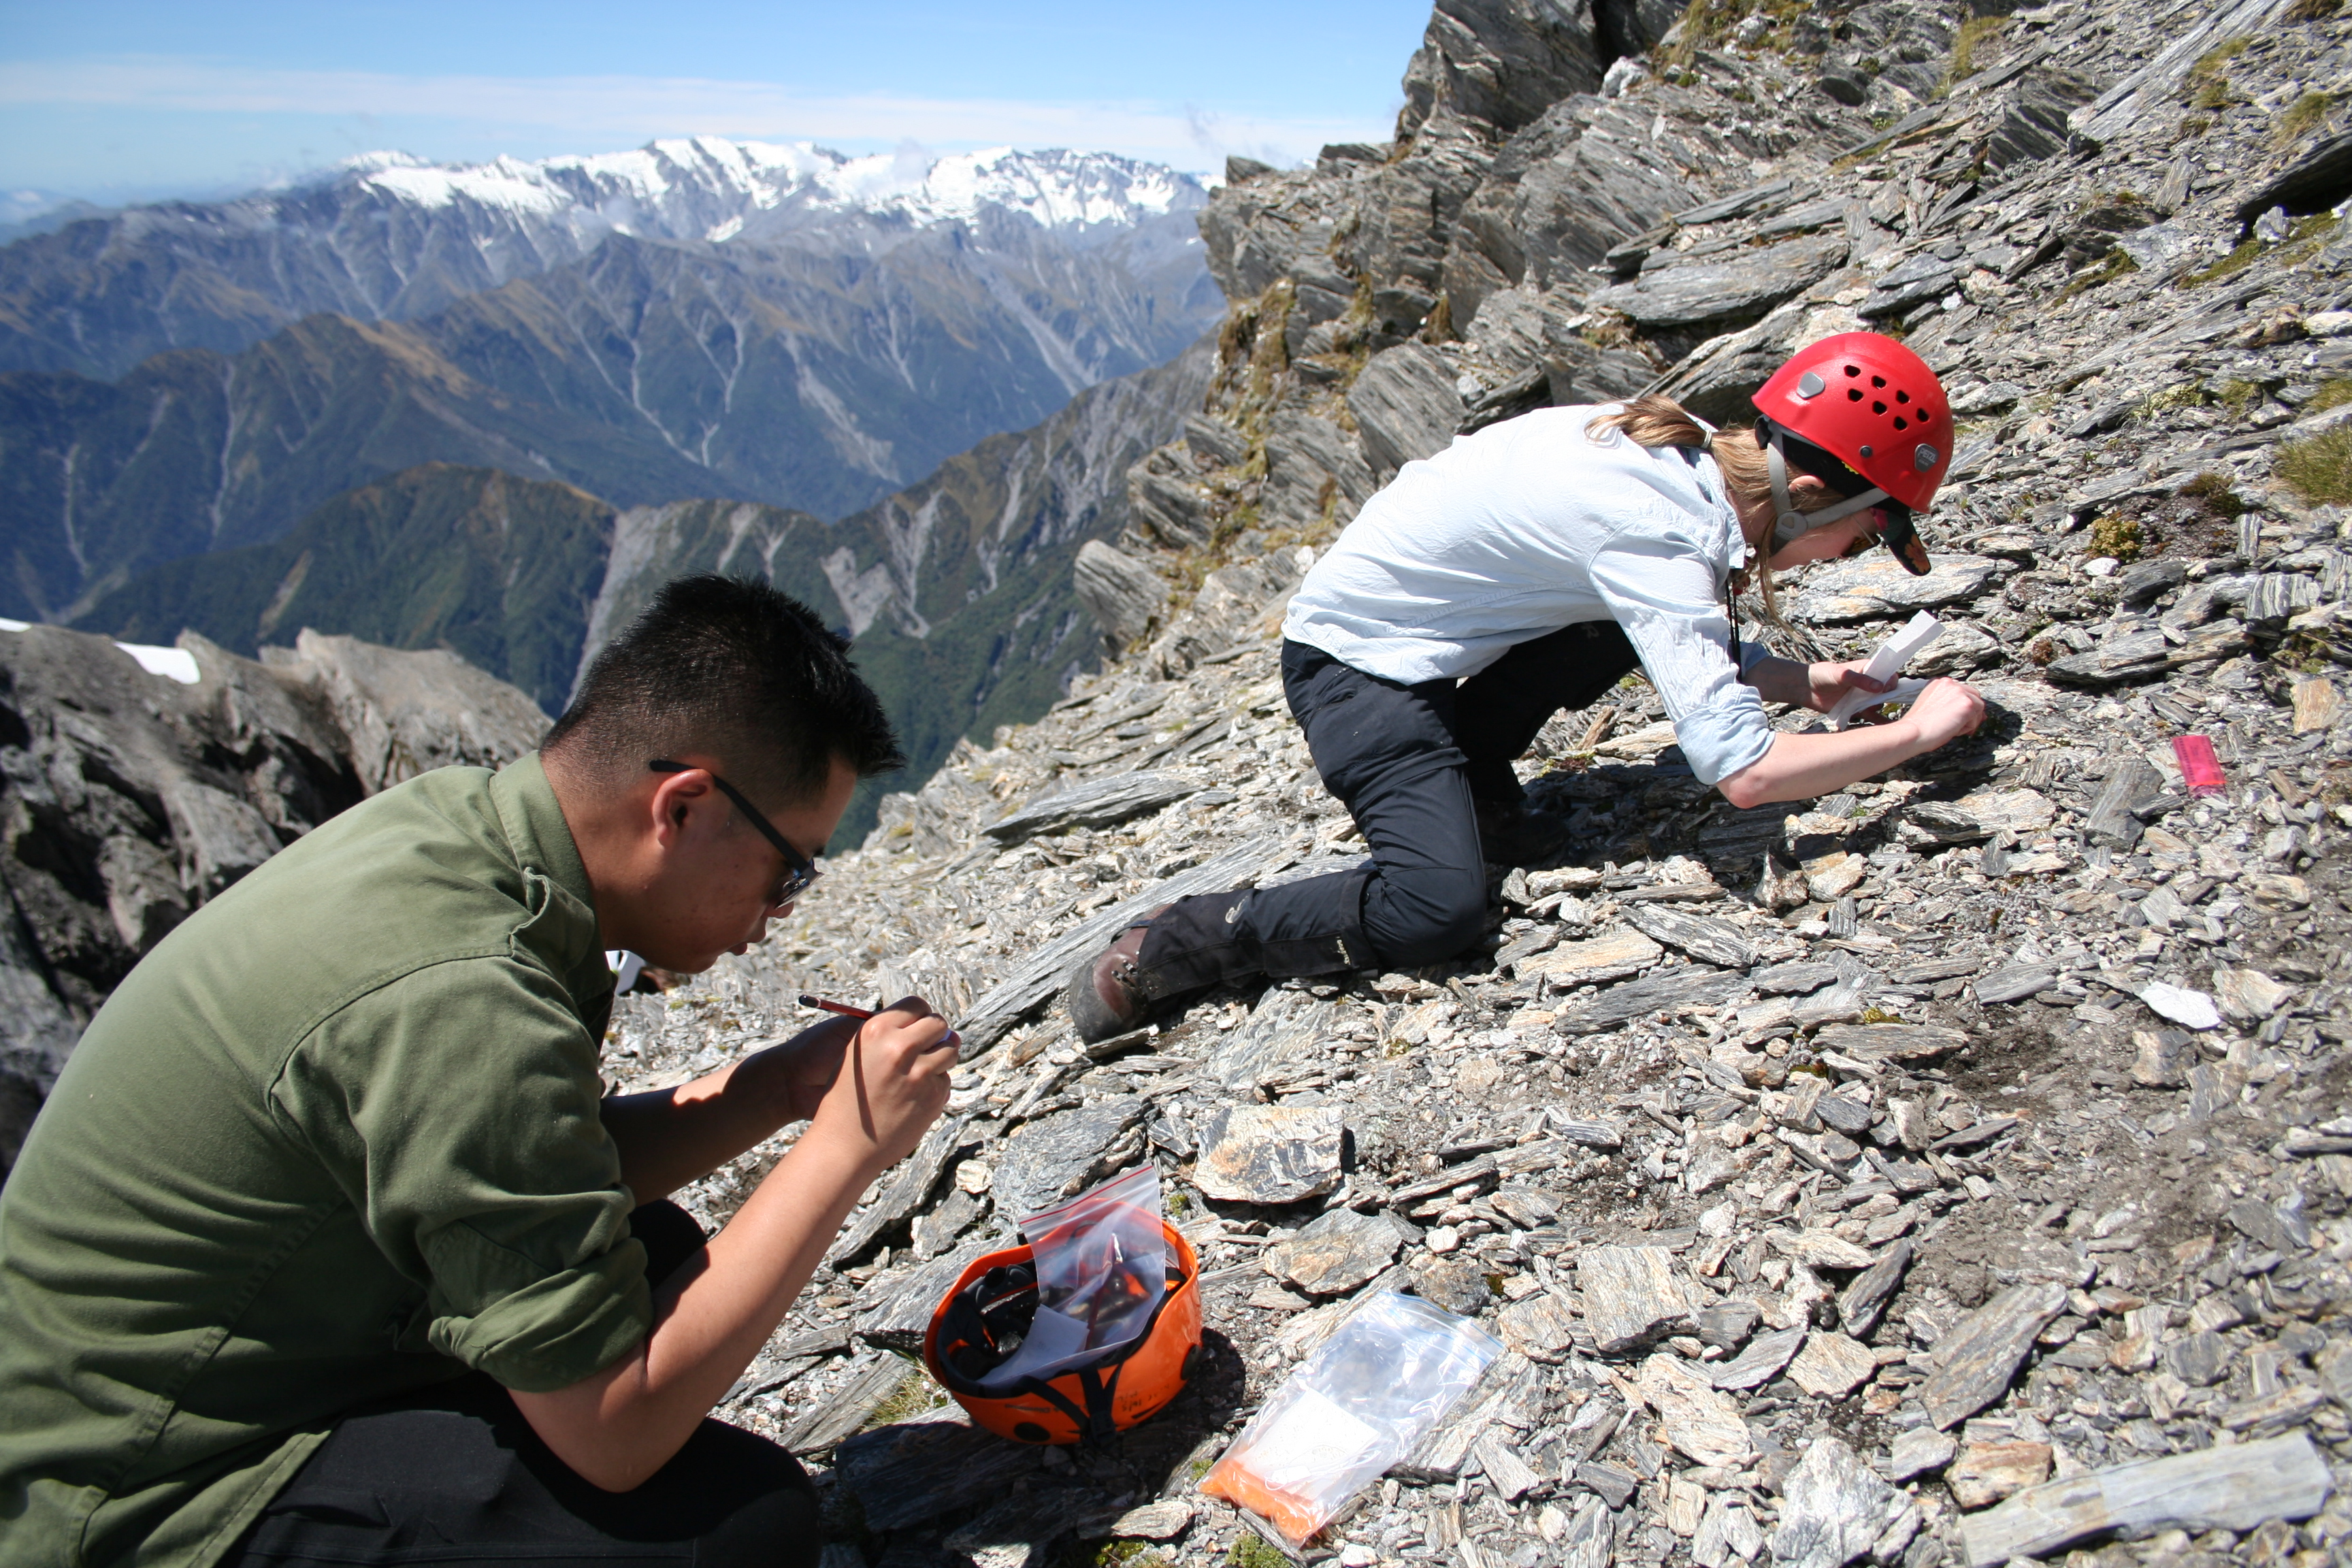 Two people crouched on the side of a mountain with pencils, bags and hard hats looking at the shale.